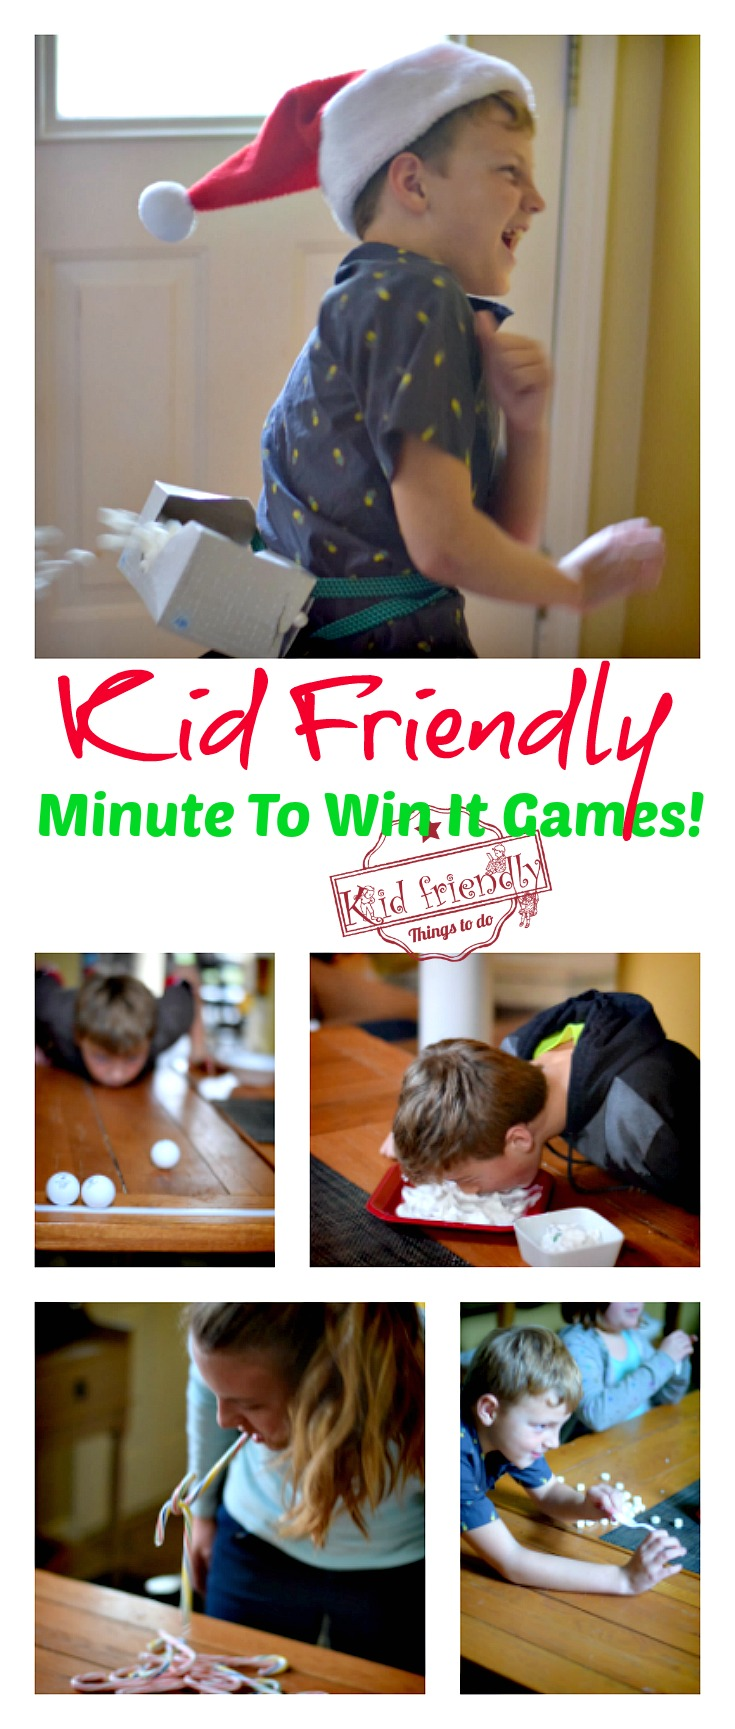 Awesome Minute To Win It Games that are Great for Kids, Teens and Adults - For Your Family Parties! - Perfect for Holiday parties, like Christmas, New Years, Thanksgiving, Halloween and even Summer Parties - www.kidfriendlythingstodo.com